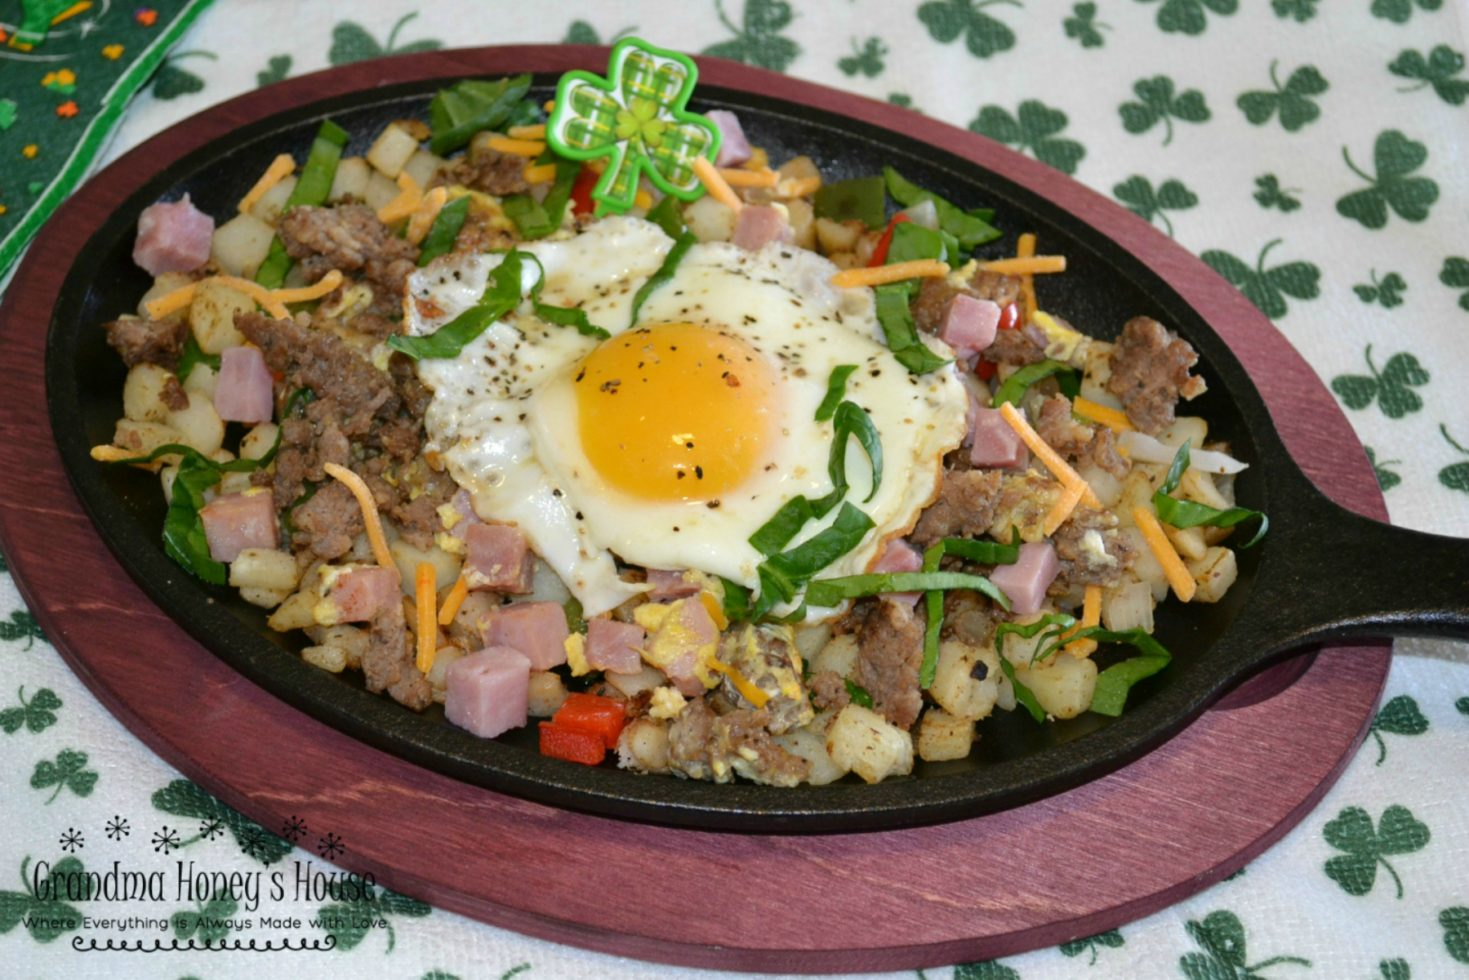 St. Patrick's Day Sizzlin breakfast skillets are packed with eggs, meats, veggies, and cheese.